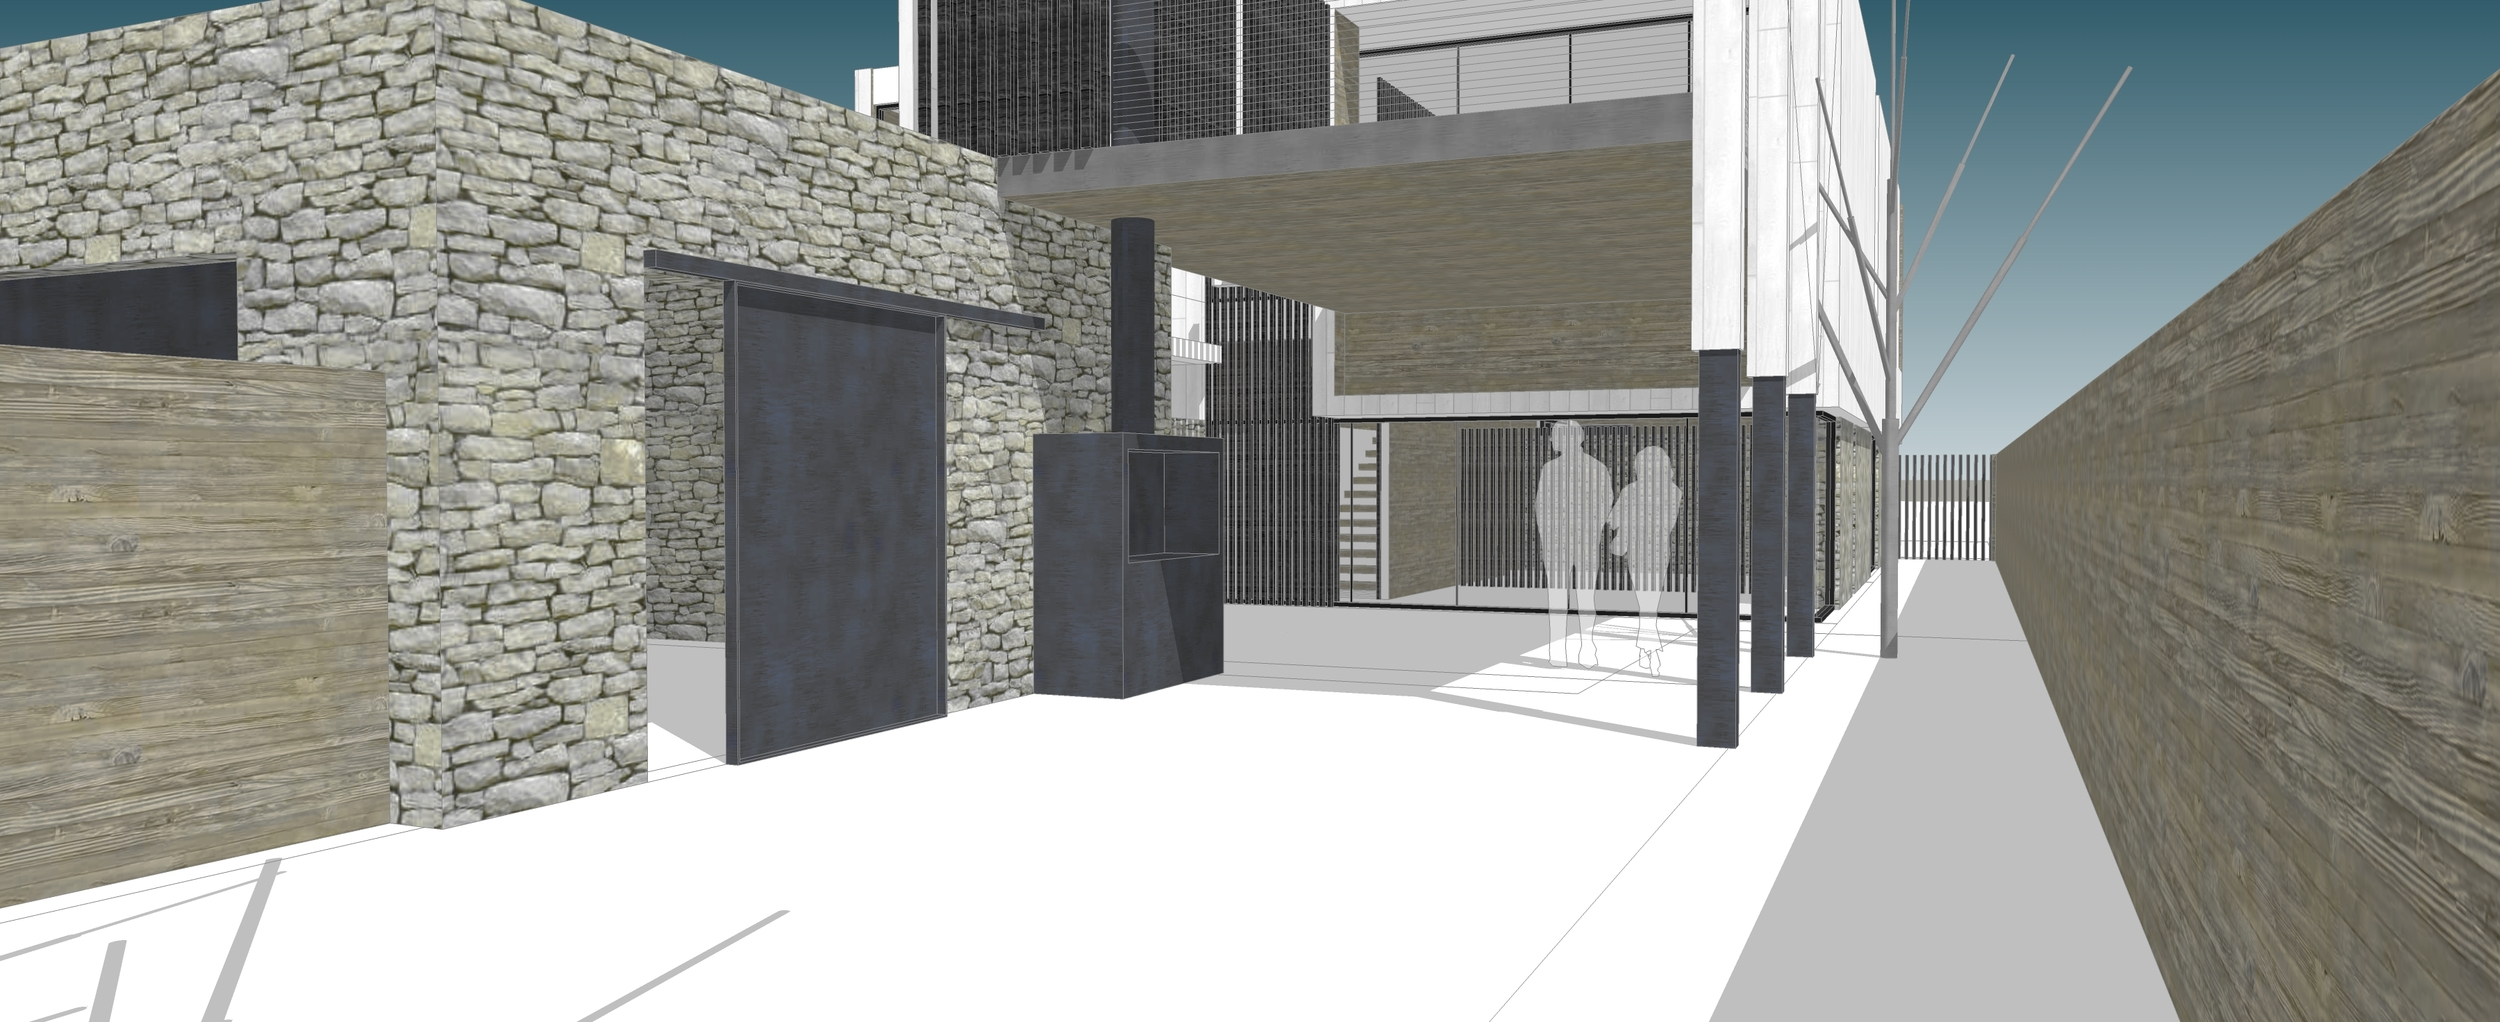 Scheme 2_OT View to Quincho from Rear